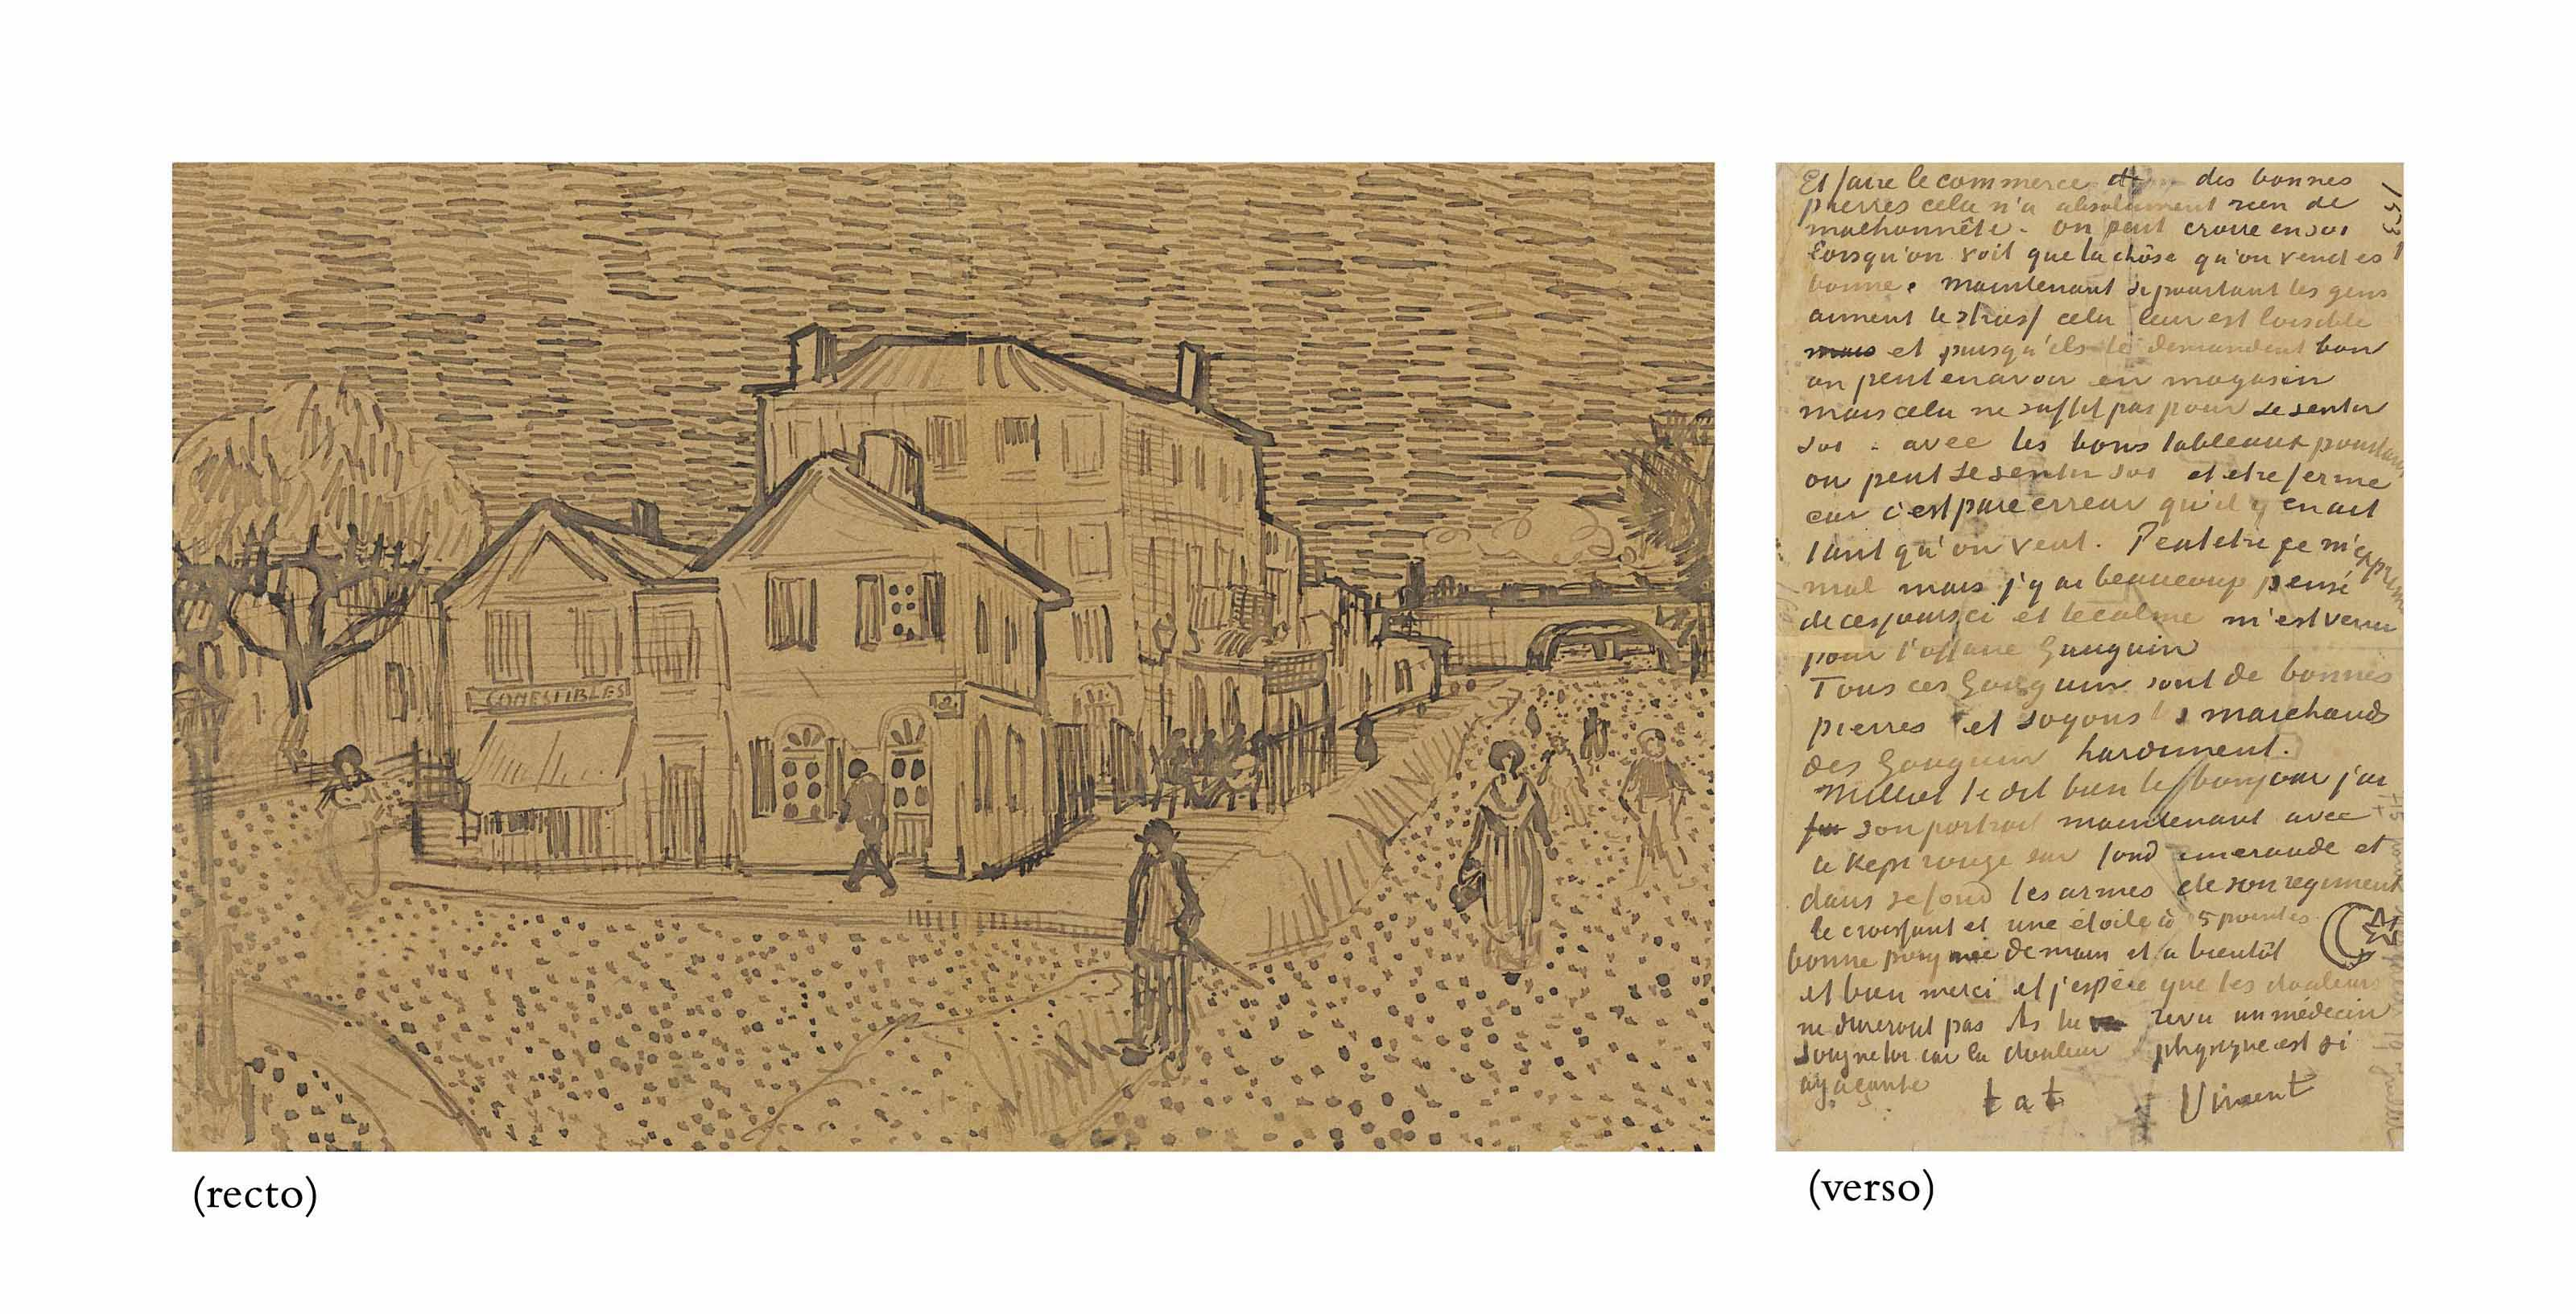 La maison de Vincent à Arles (La maison jaune) (recto); page of a letter from Vincent to his brother Theo (verso)